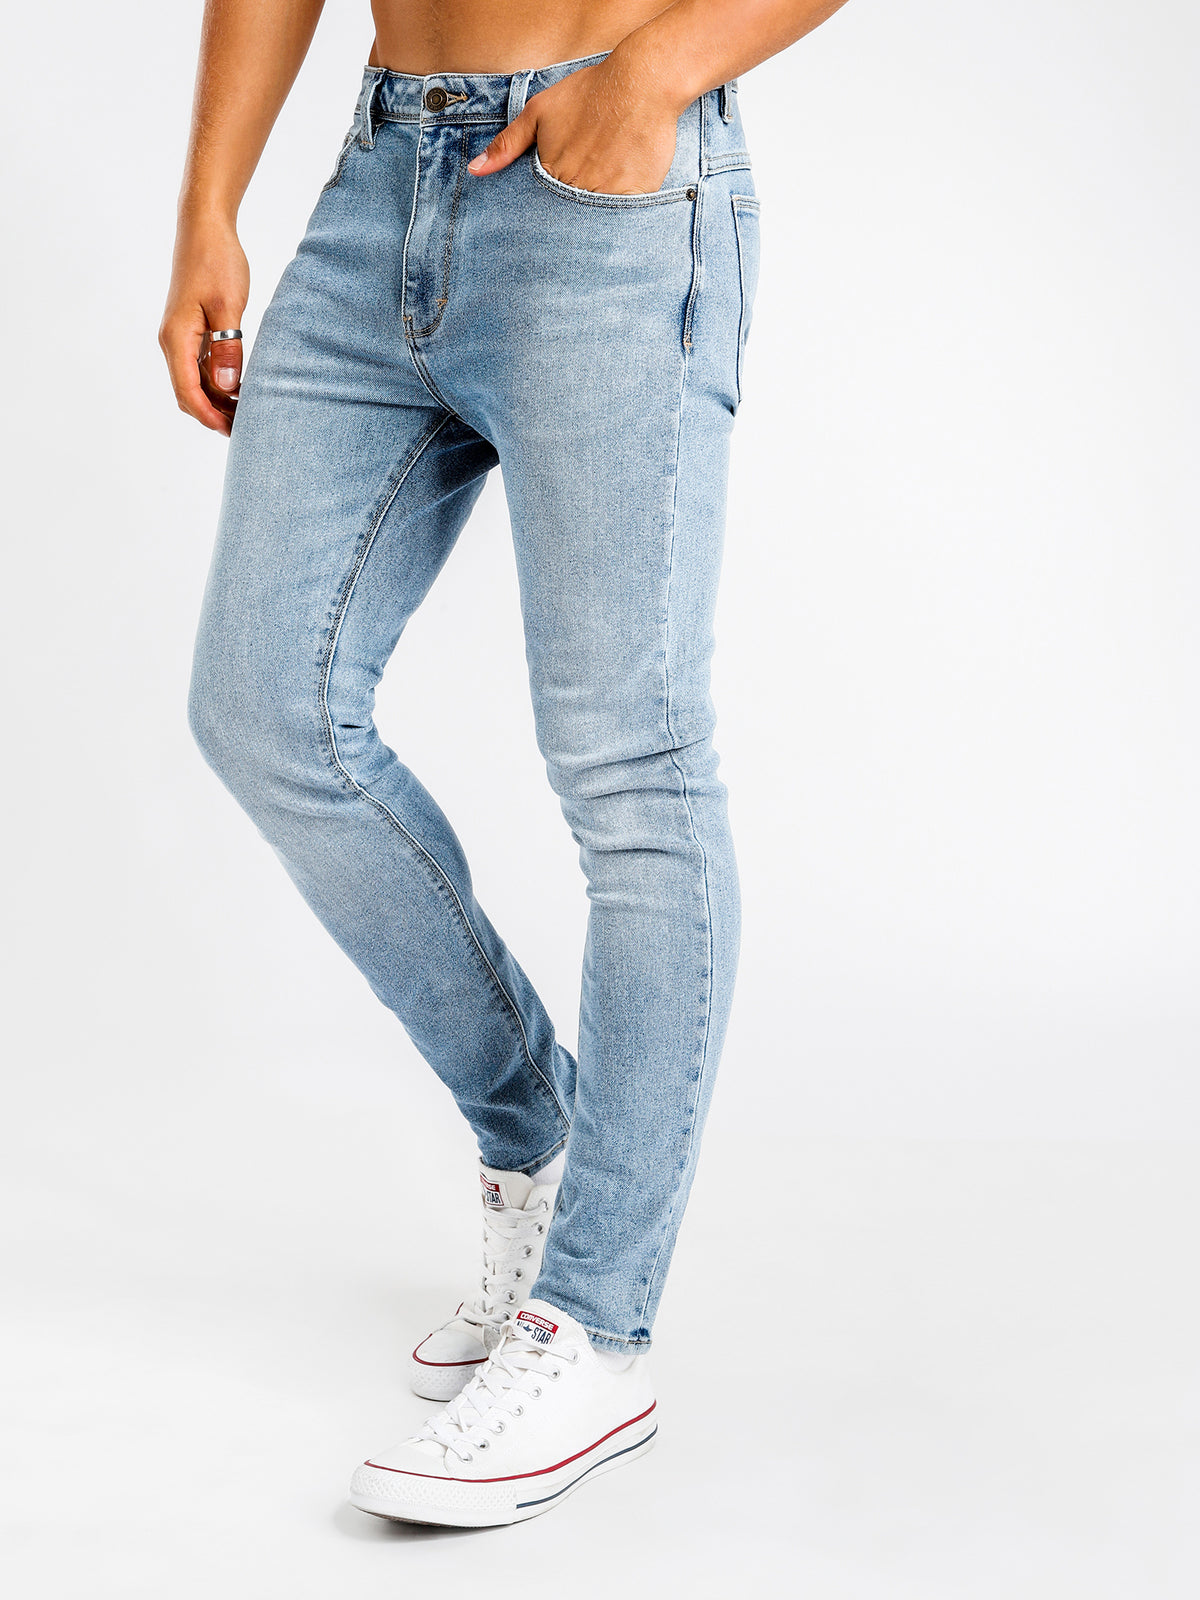 A Dropped Skinny Turn Up Jean in Whispering Blues Denim